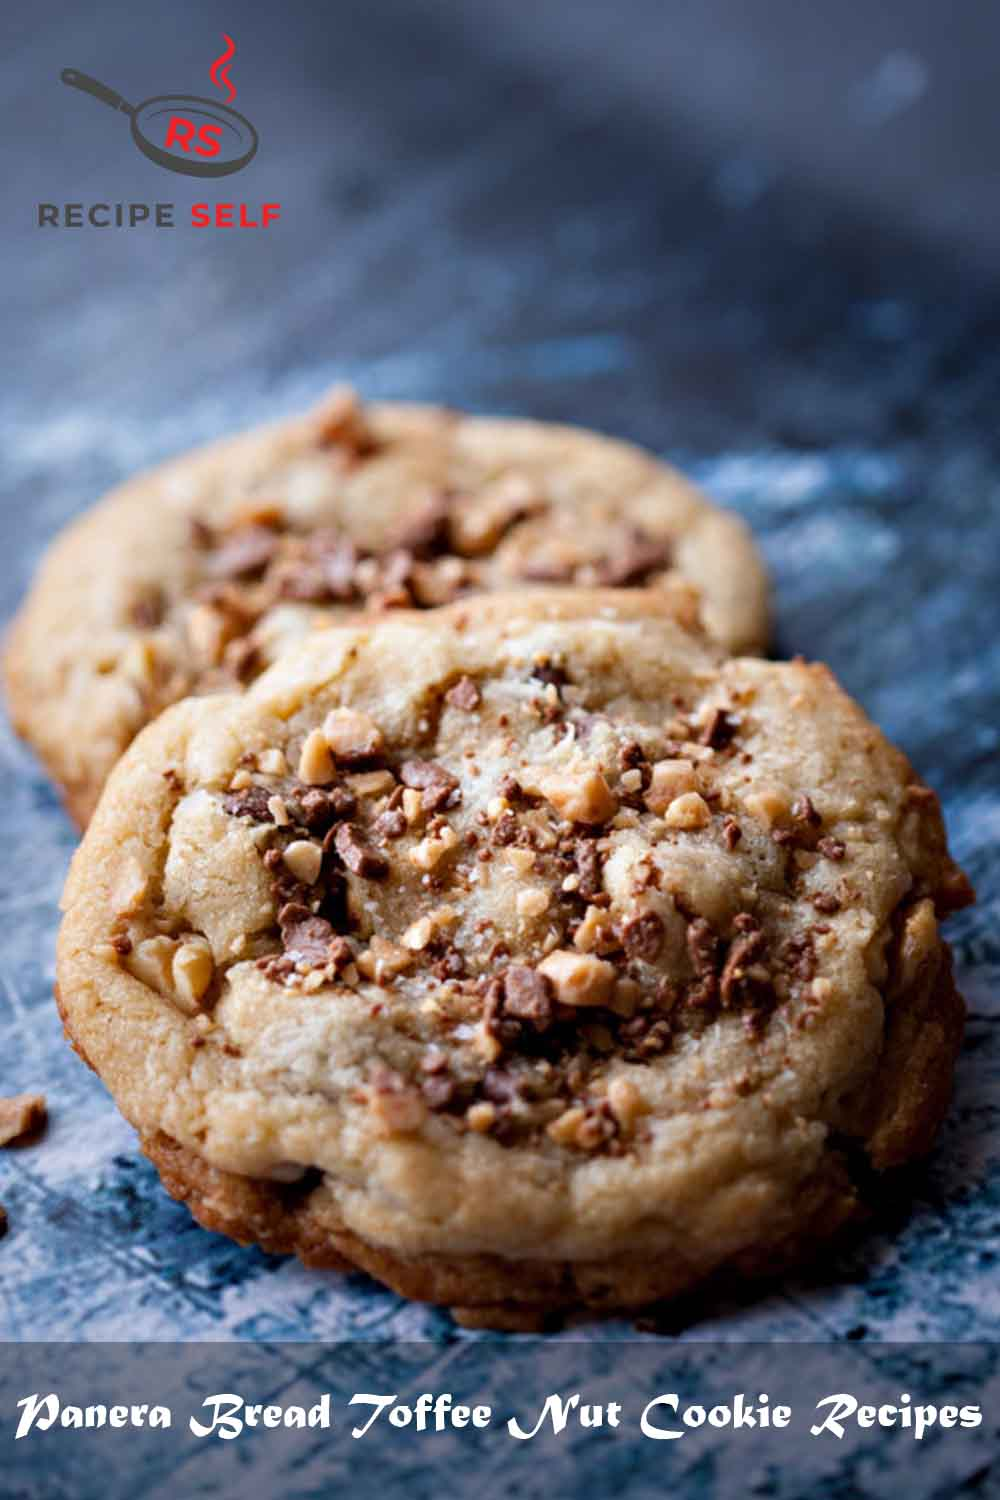 Panera Bread Toffee Nut Cookie Recipes